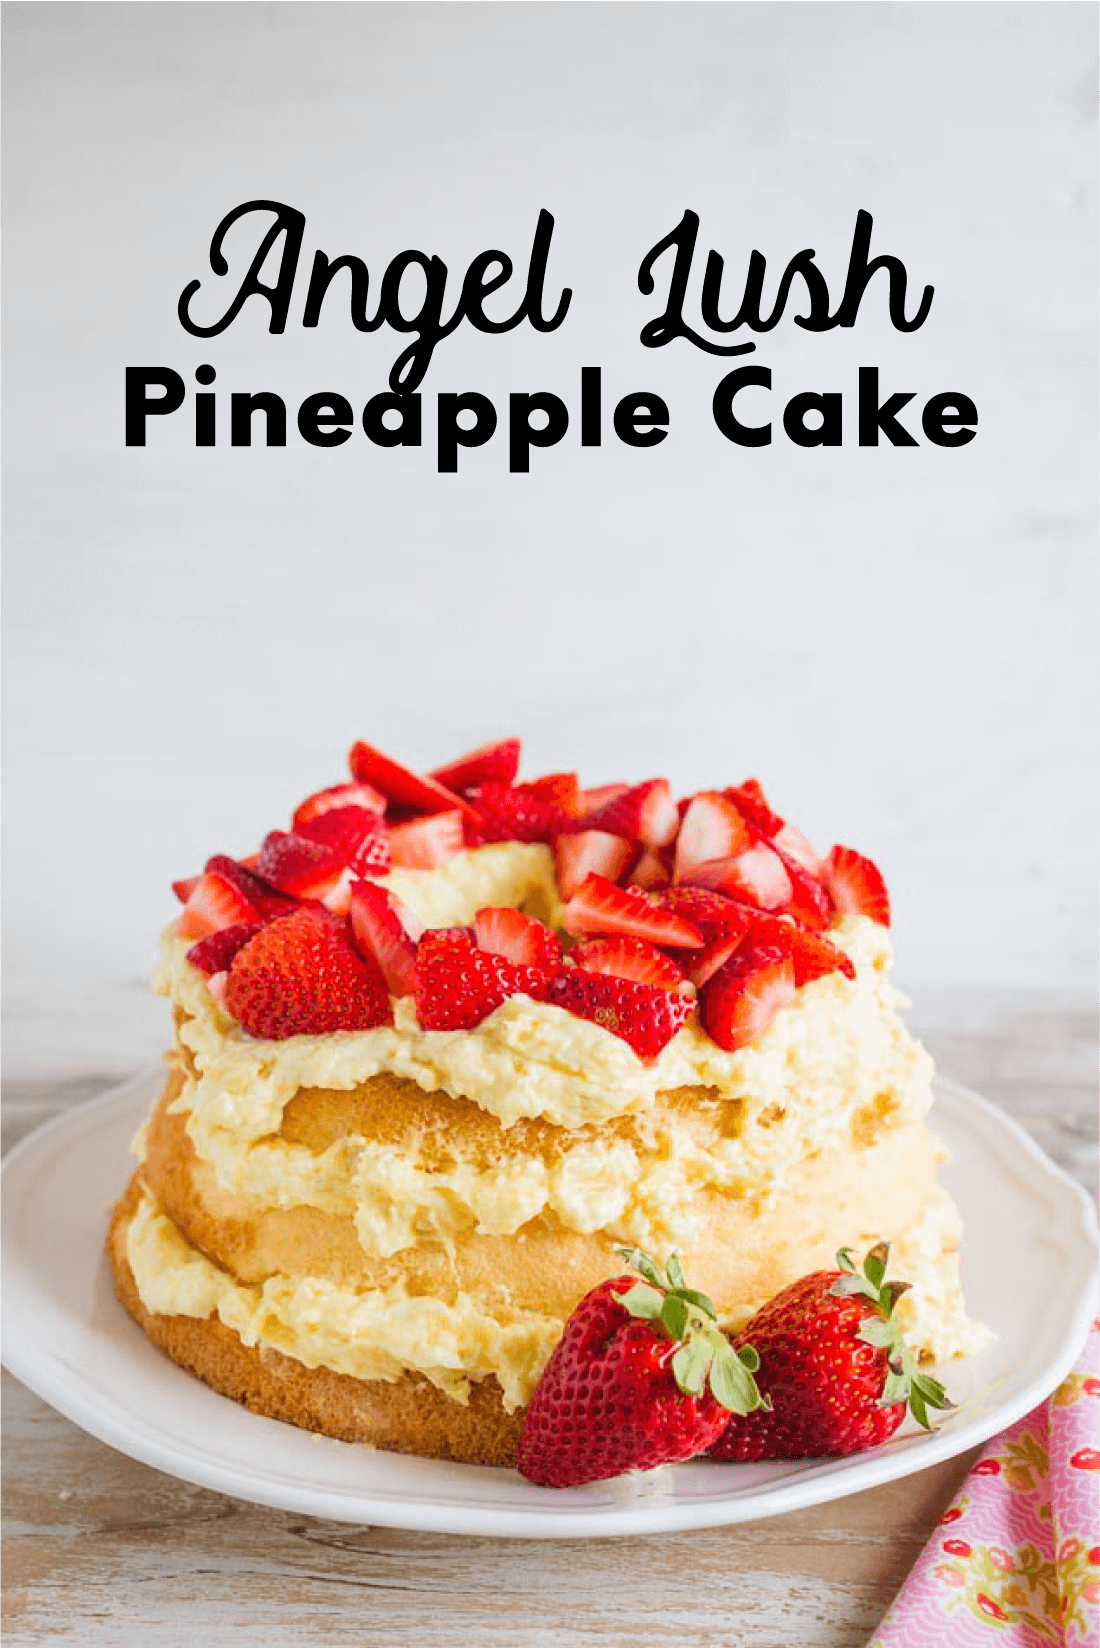 Food: Angel Lush Pineapple Cake - the perfect dessert recipe to try out. This cake is so easy to whip up and tastes amazing. You have to try it!